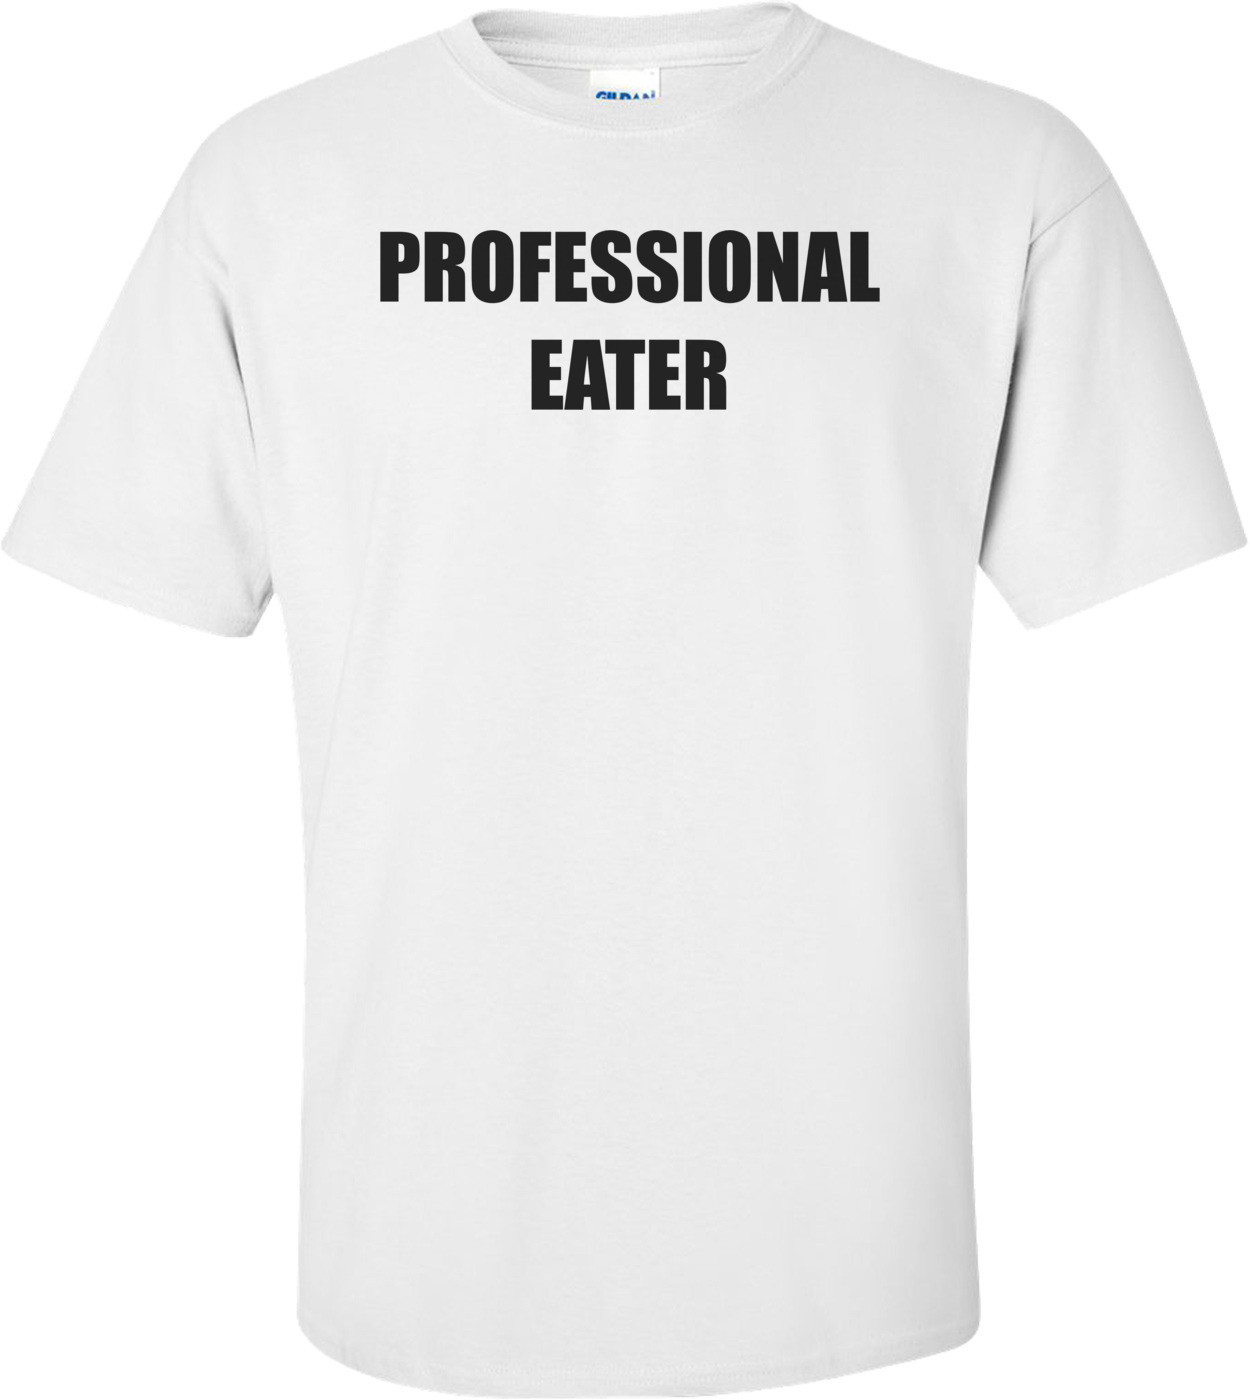 PROFESSIONAL EATER Shirt